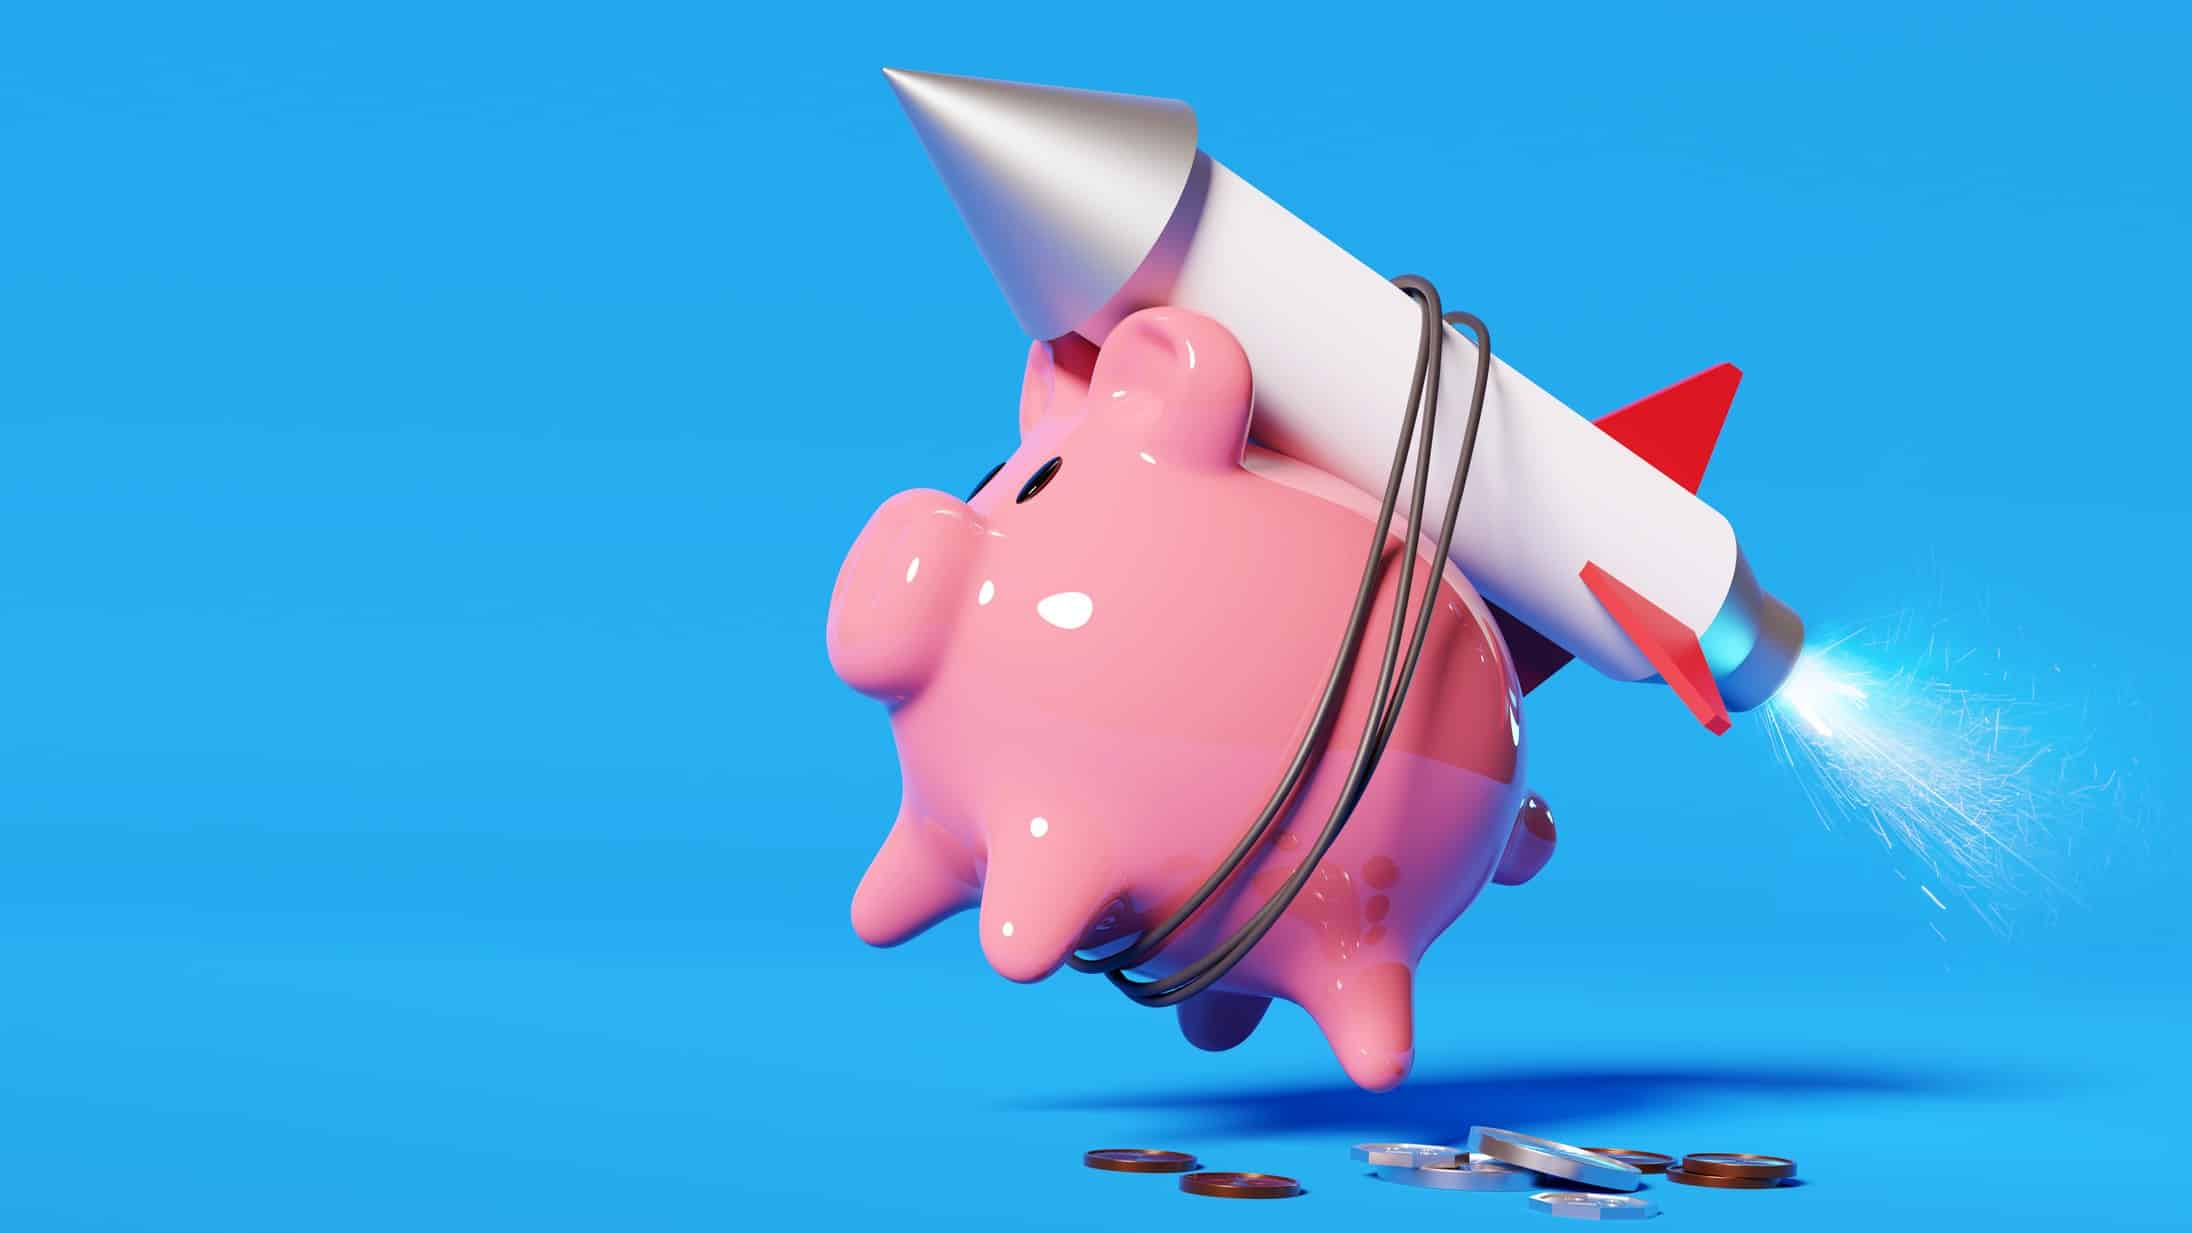 surging asx share price represented by piggy bank with rocket attached to it